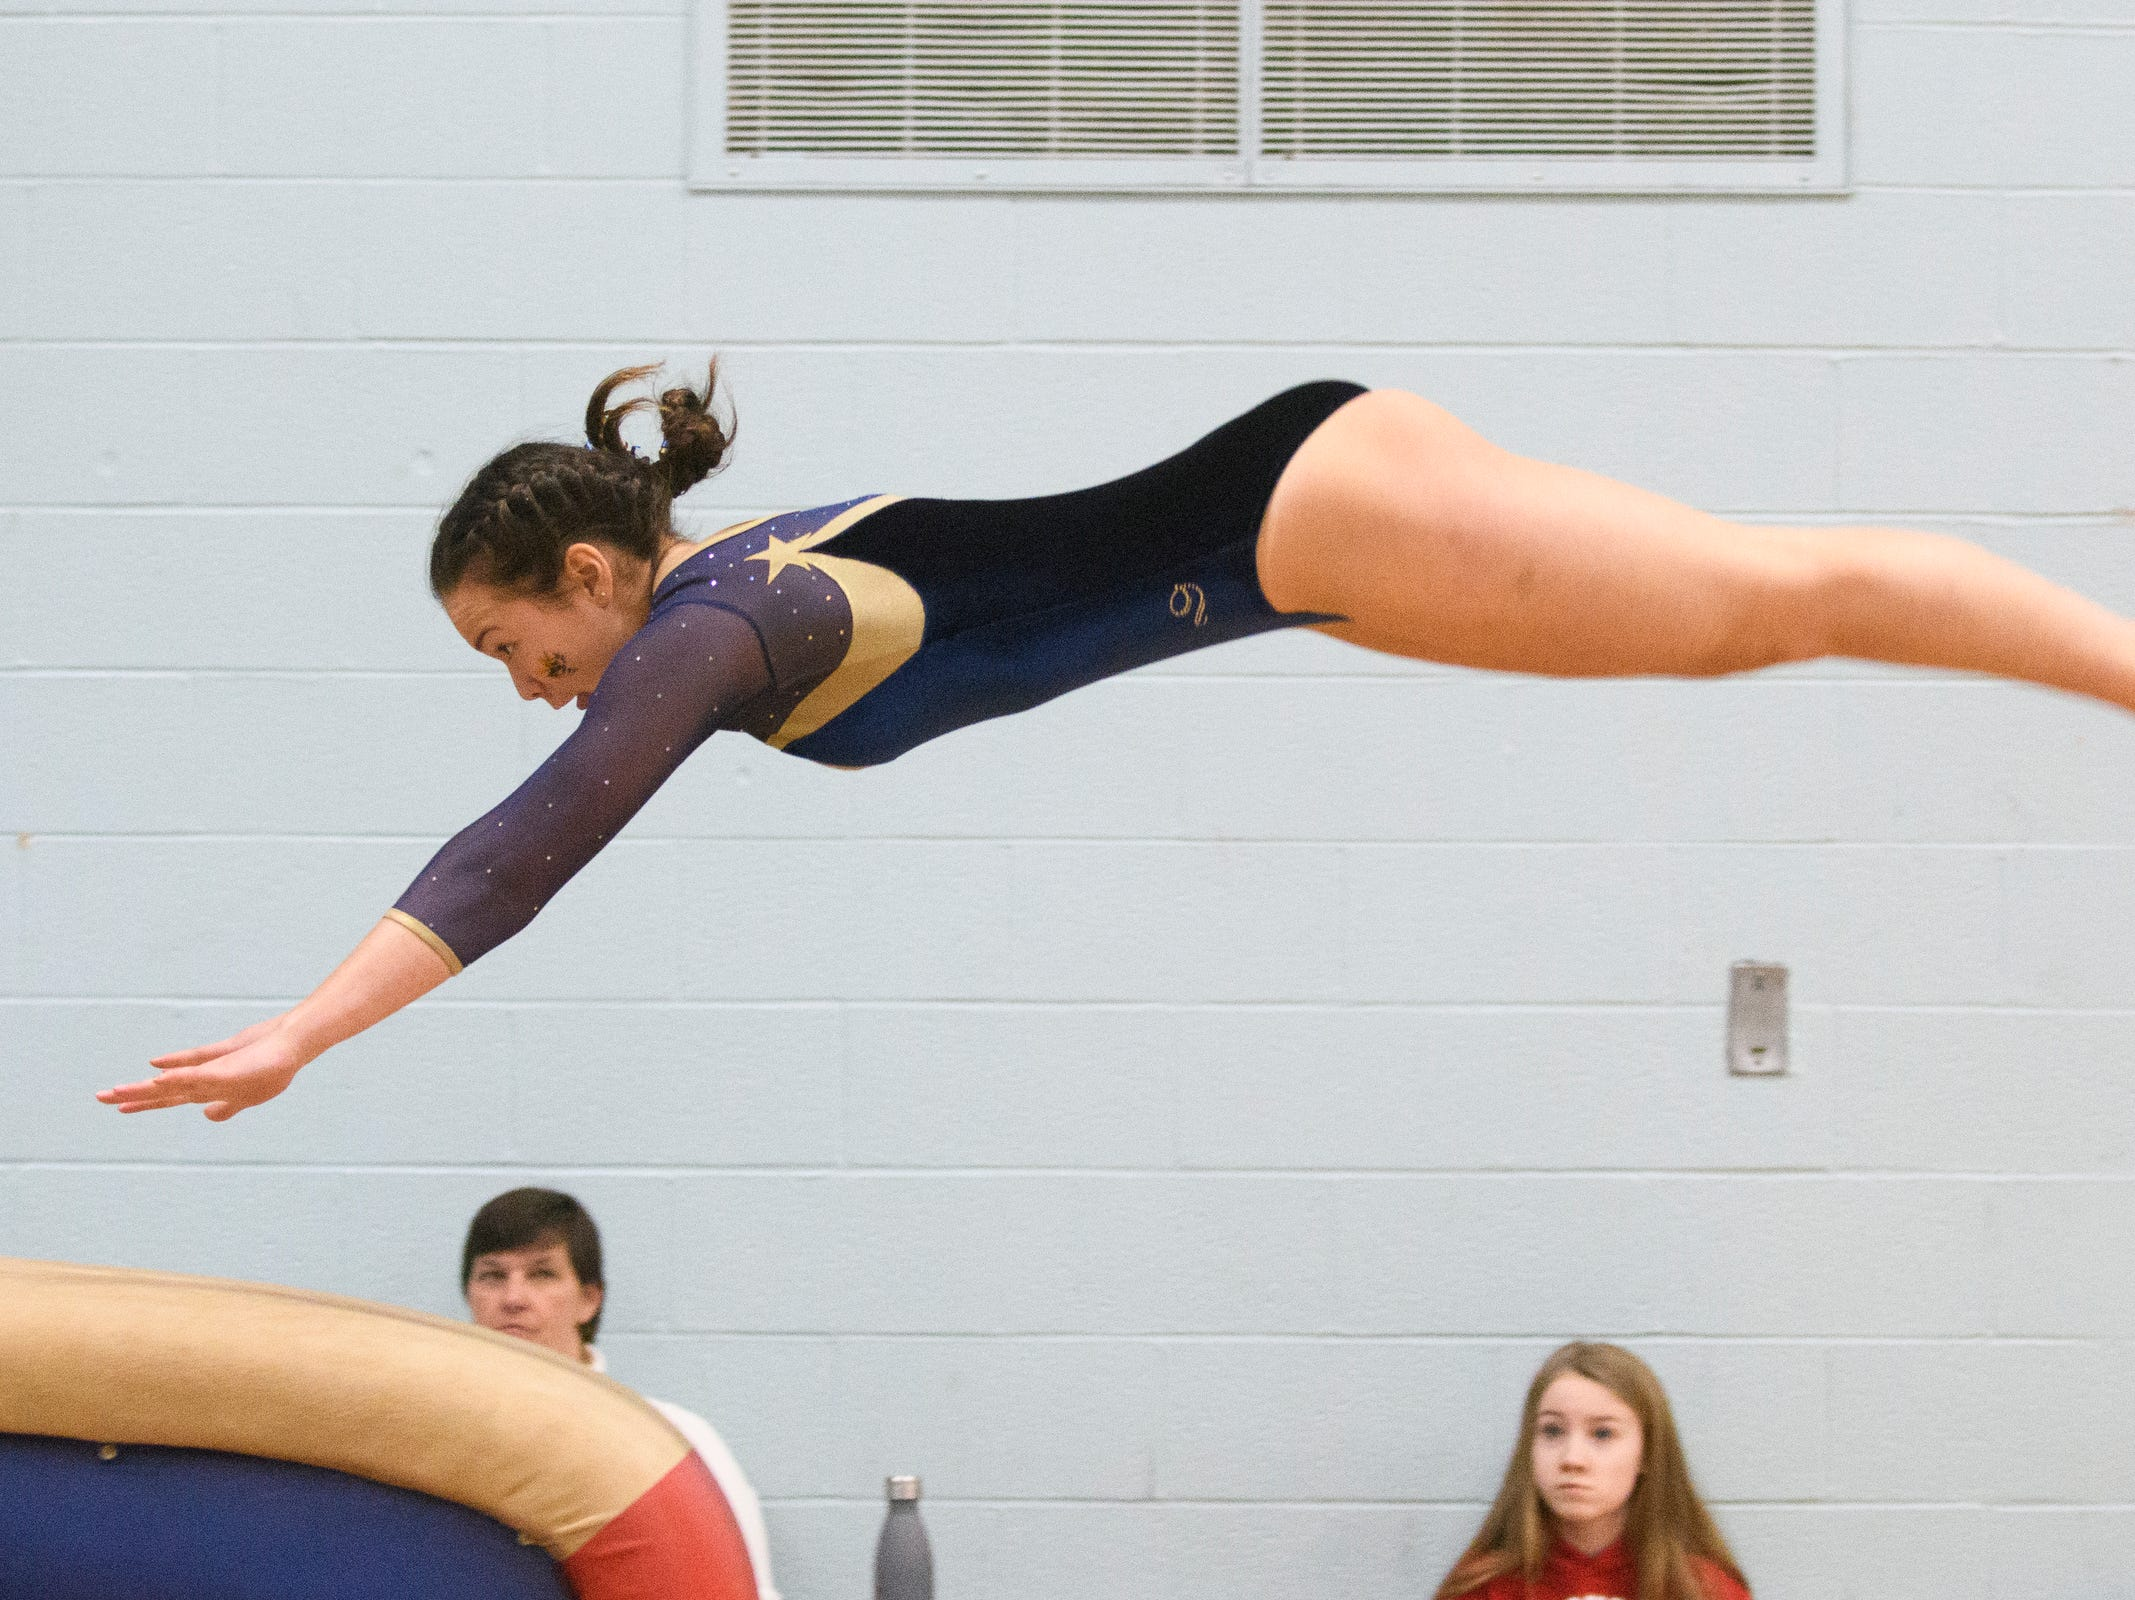 Essex's Gabriela Schmida competes in the vault during the 2019 high school gymnastics championship at Essex High School on Saturday afternoon February 16, 2019 in Essex, Vermont.